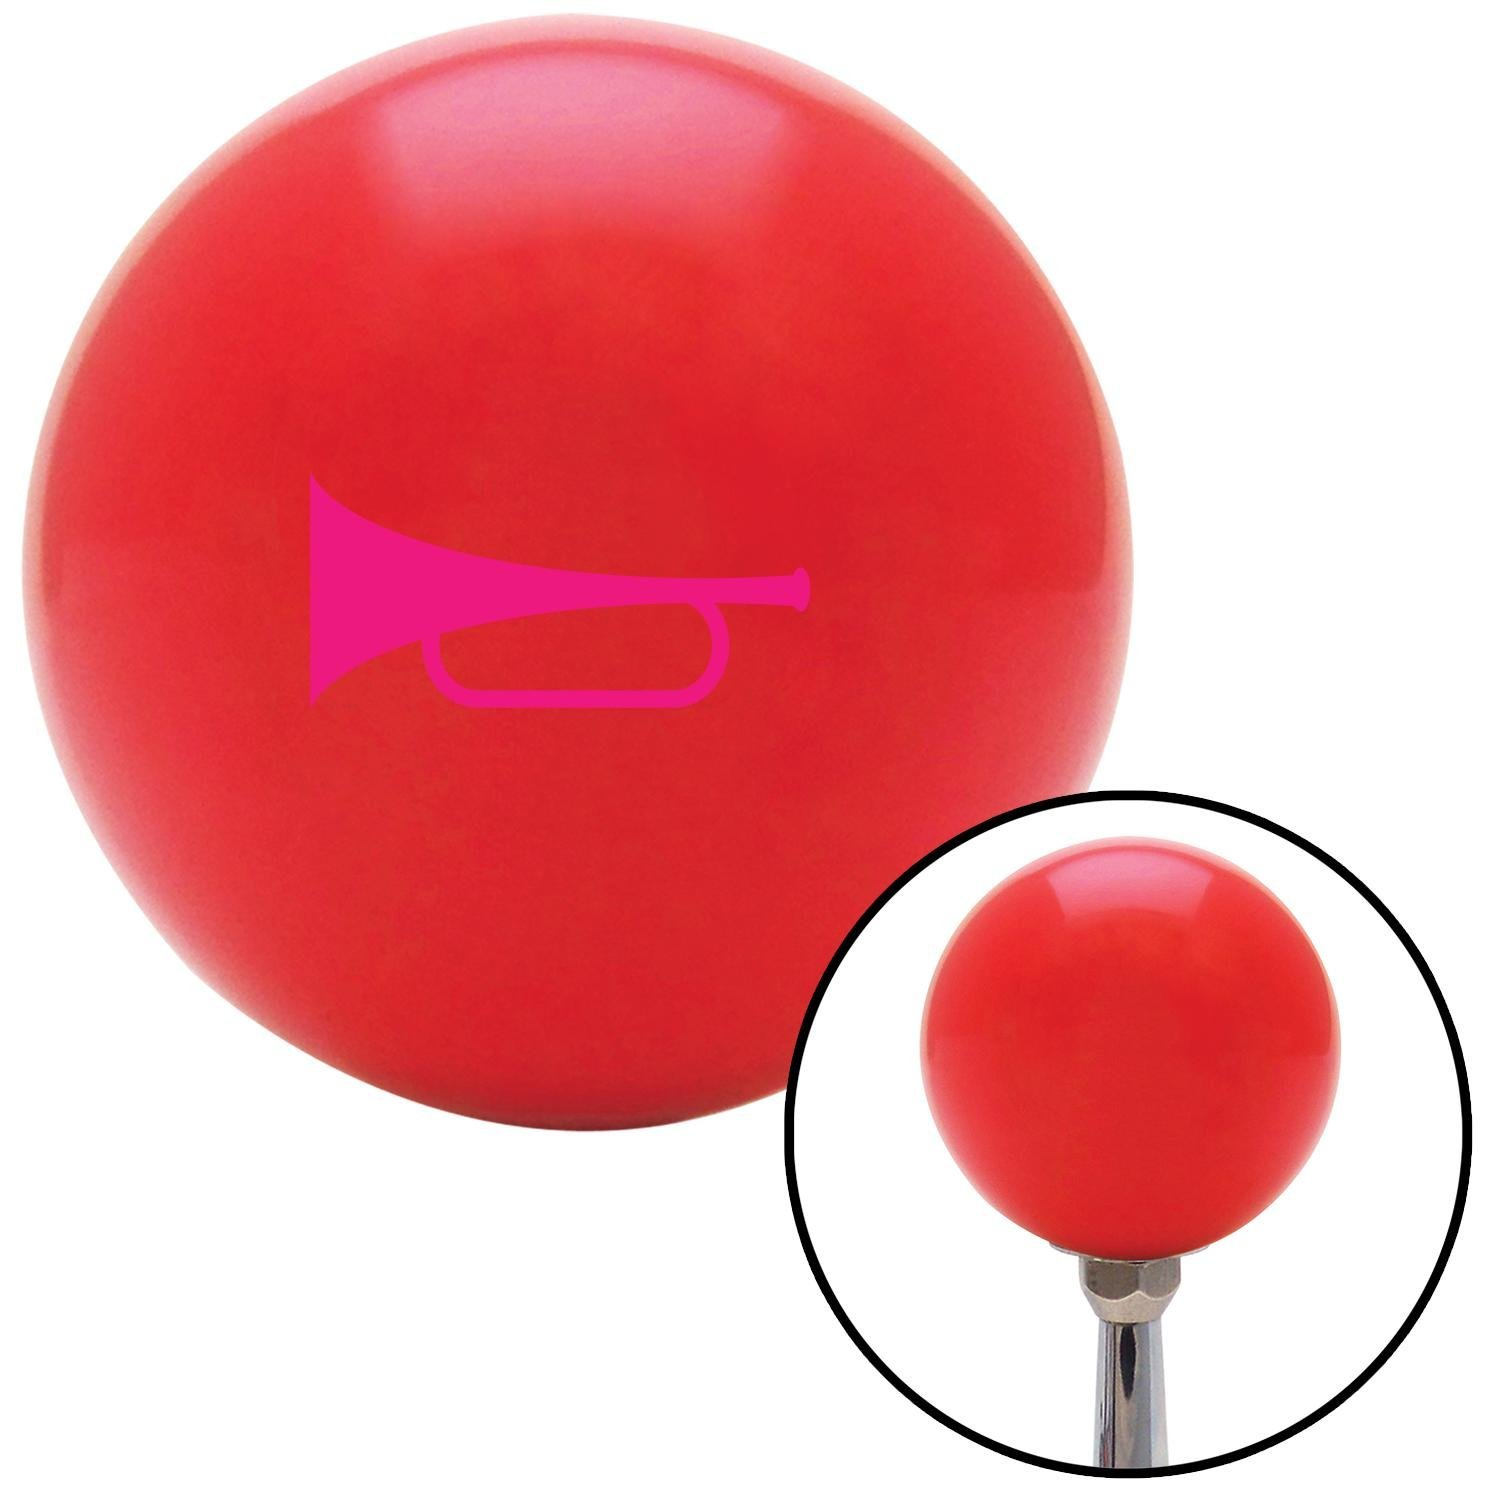 American Shifter 94325 Red Shift Knob with M16 x 1.5 Insert Pink Horn Trumpet